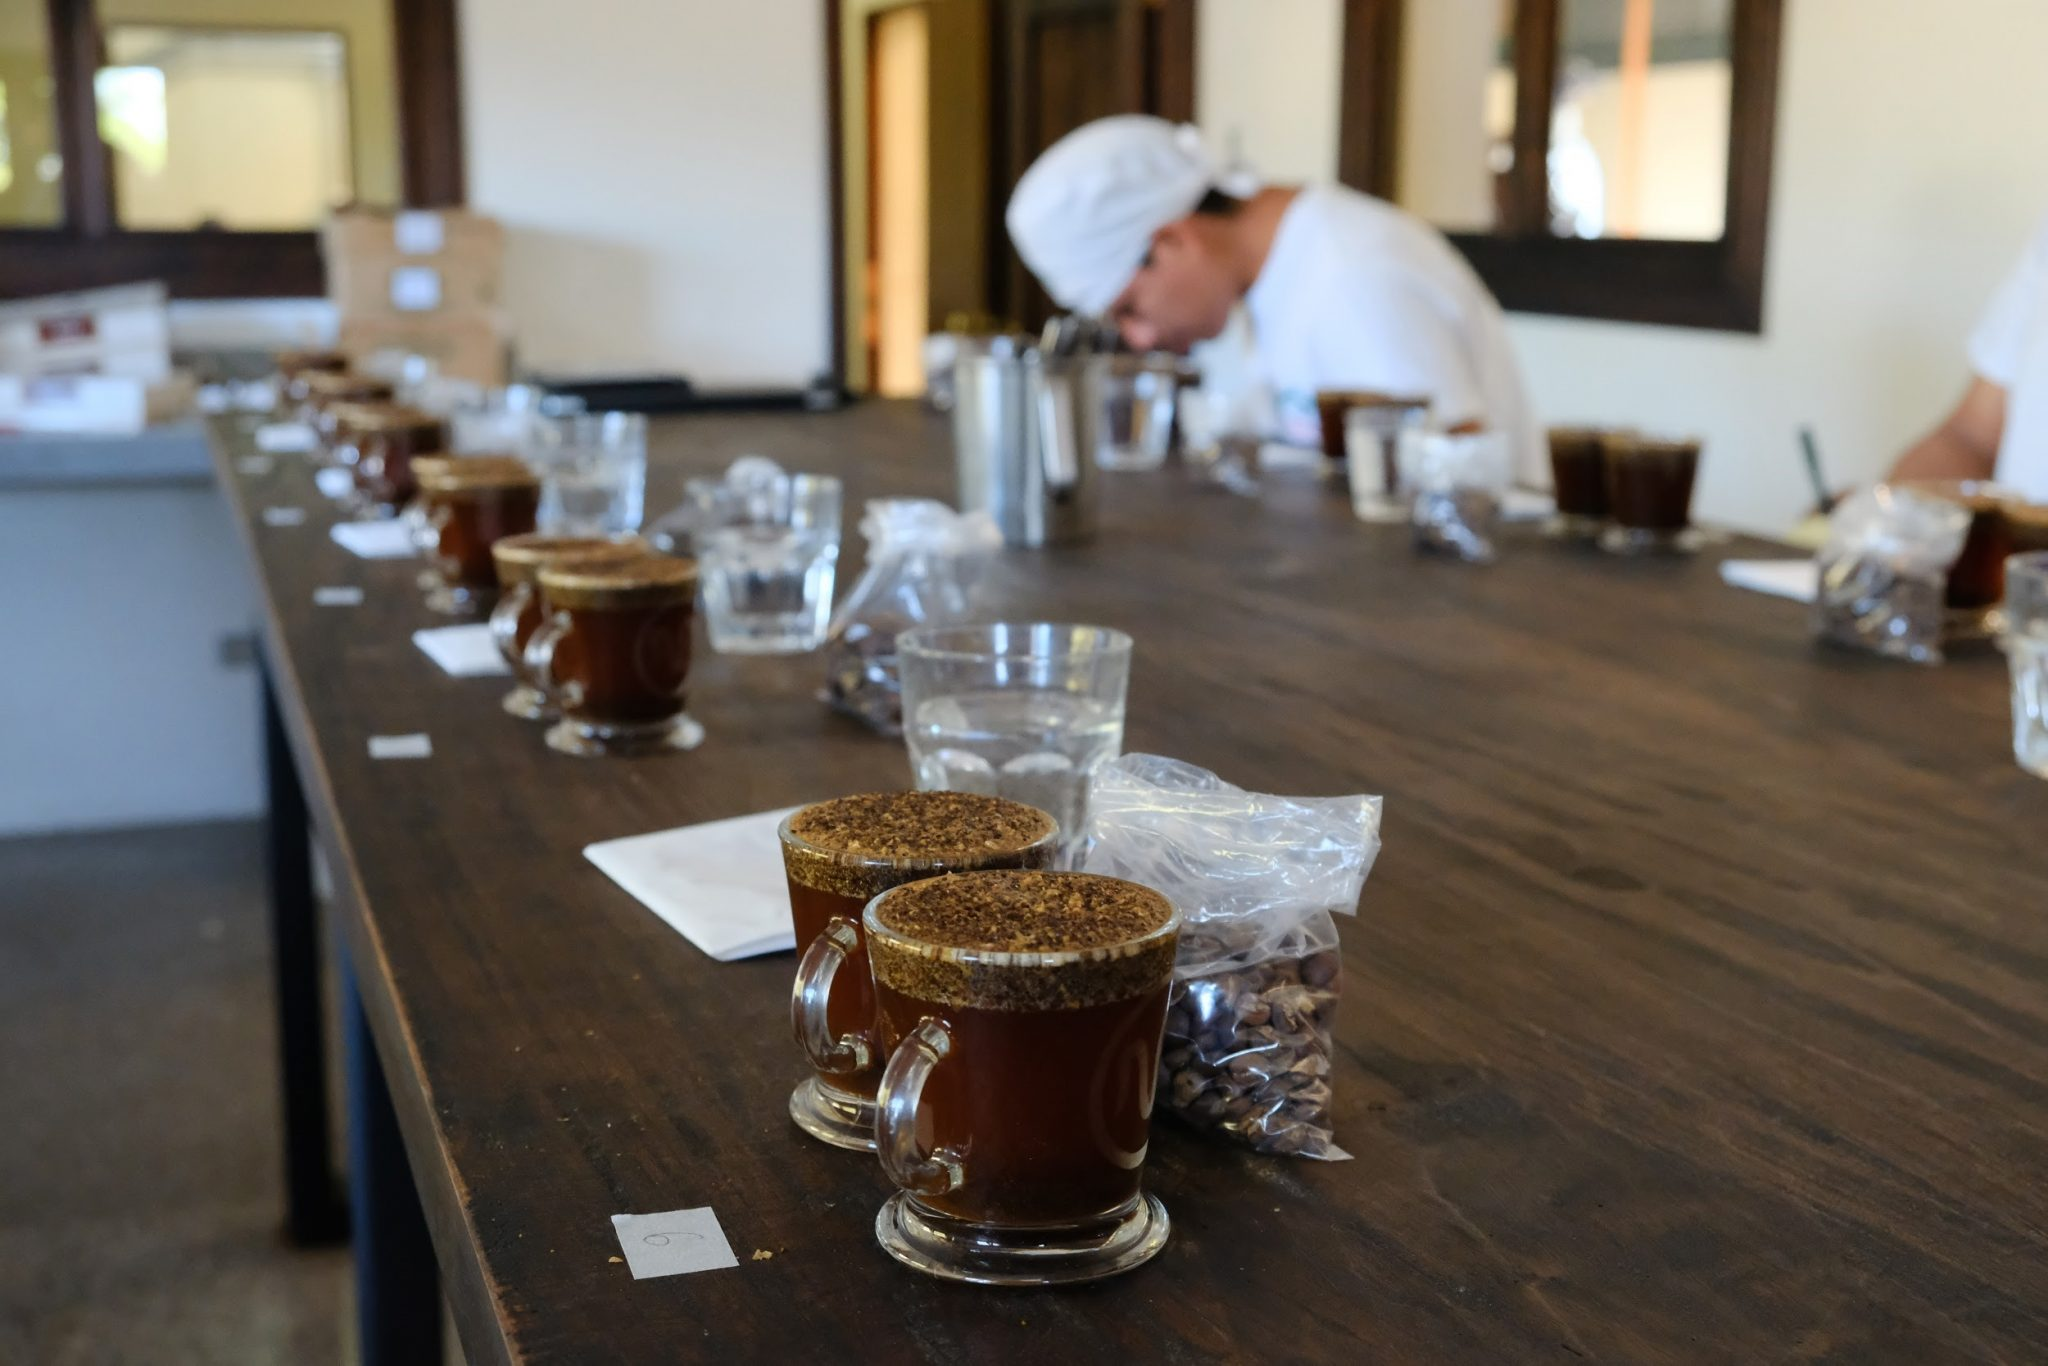 A man smells a coffee during a coffee cupping